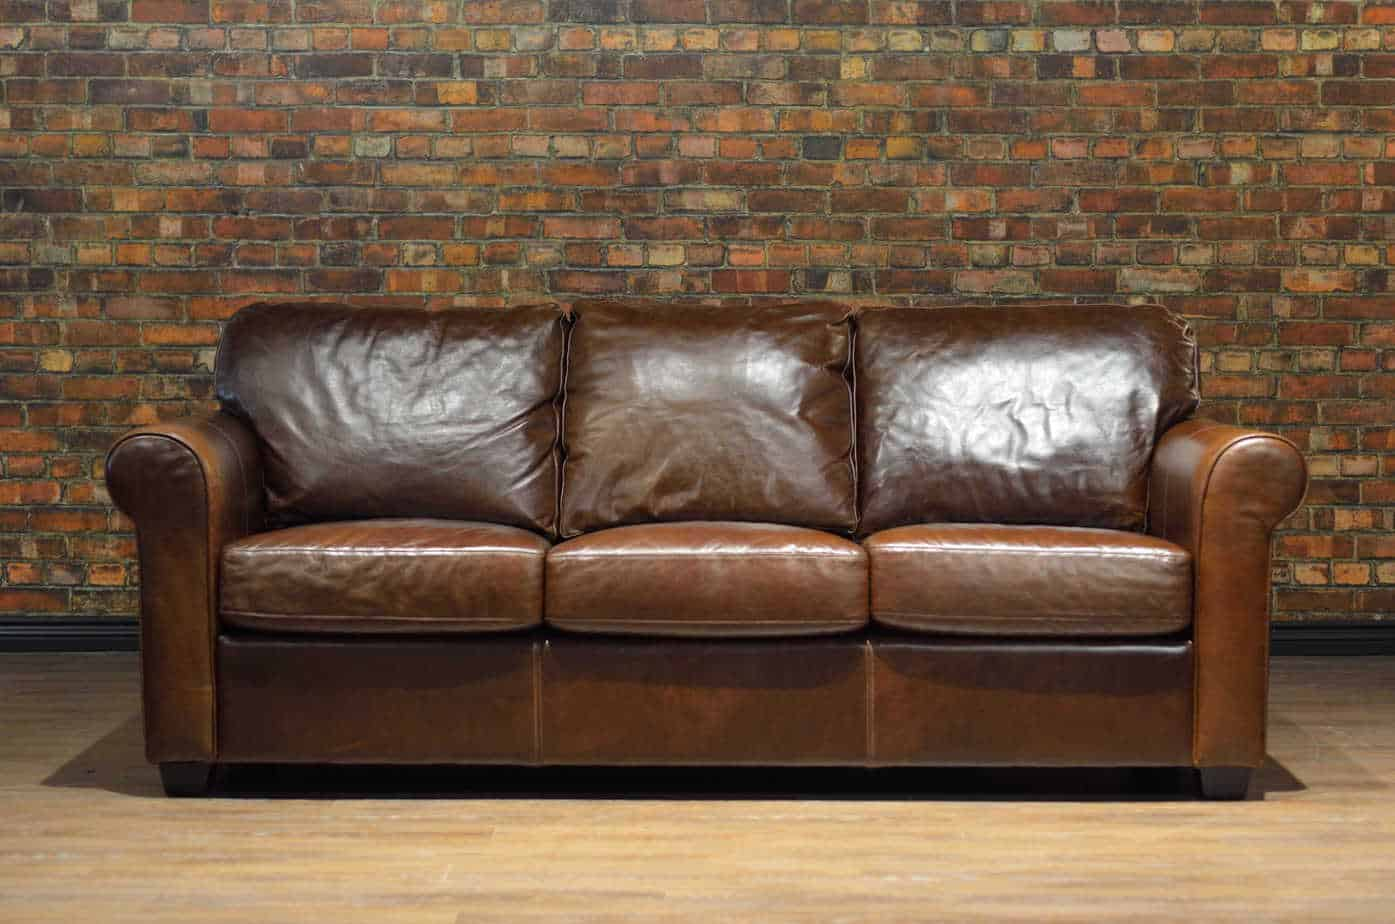 The Duke Leather Sofa | Canada's Boss Leather Sofas and ...